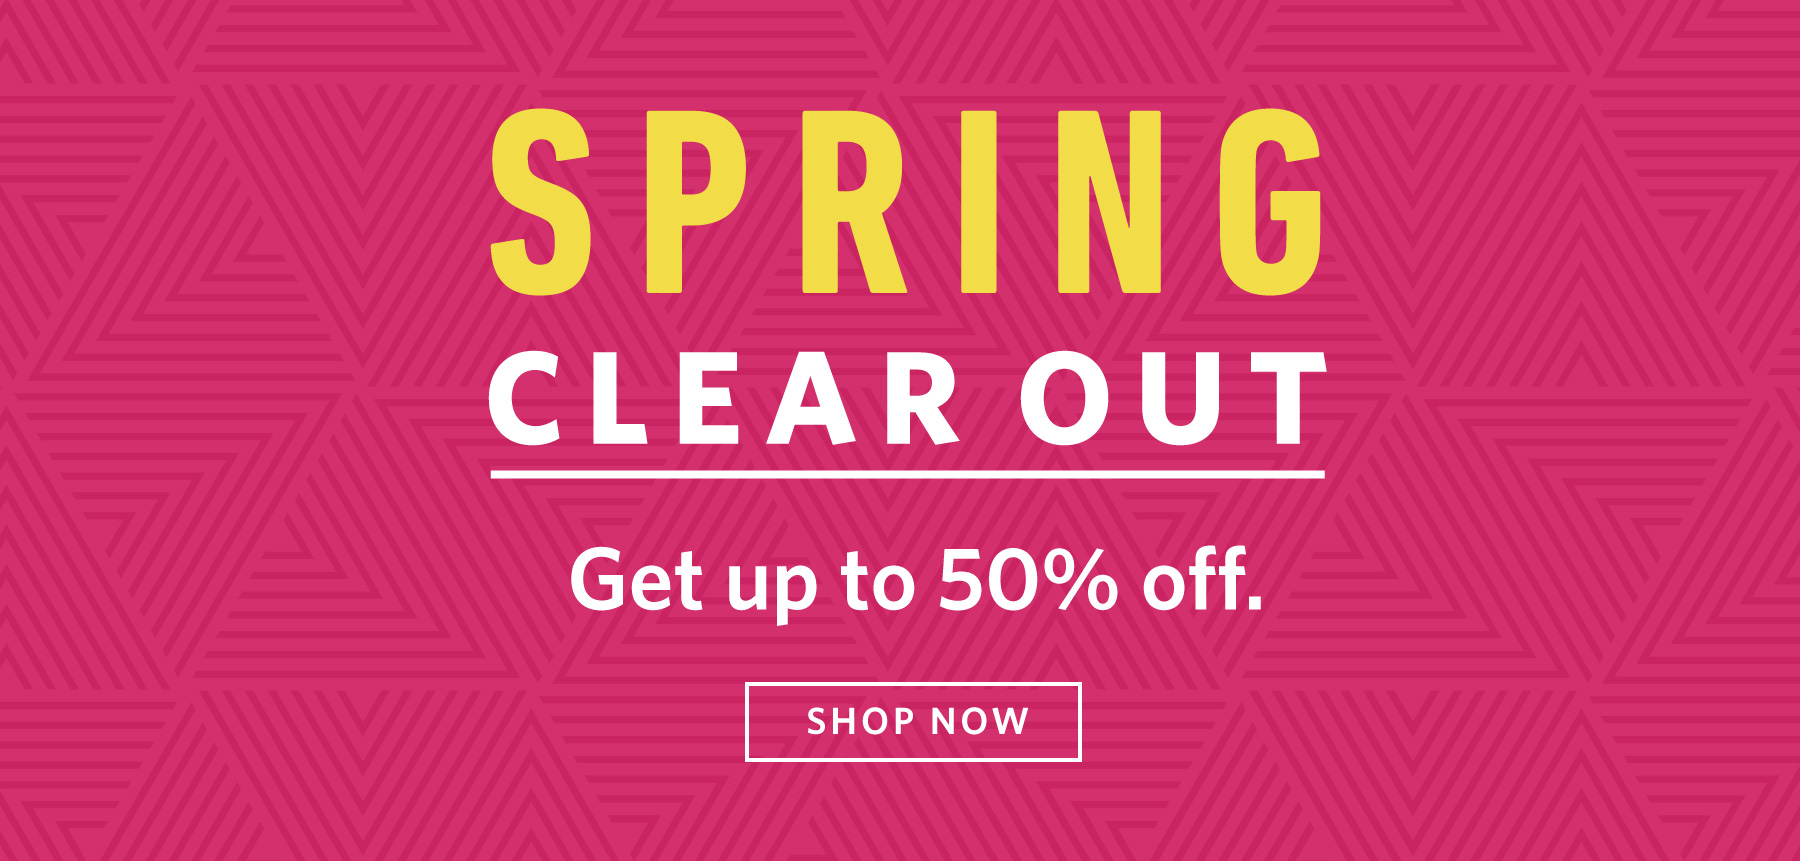 01-spring-clearout.jpg